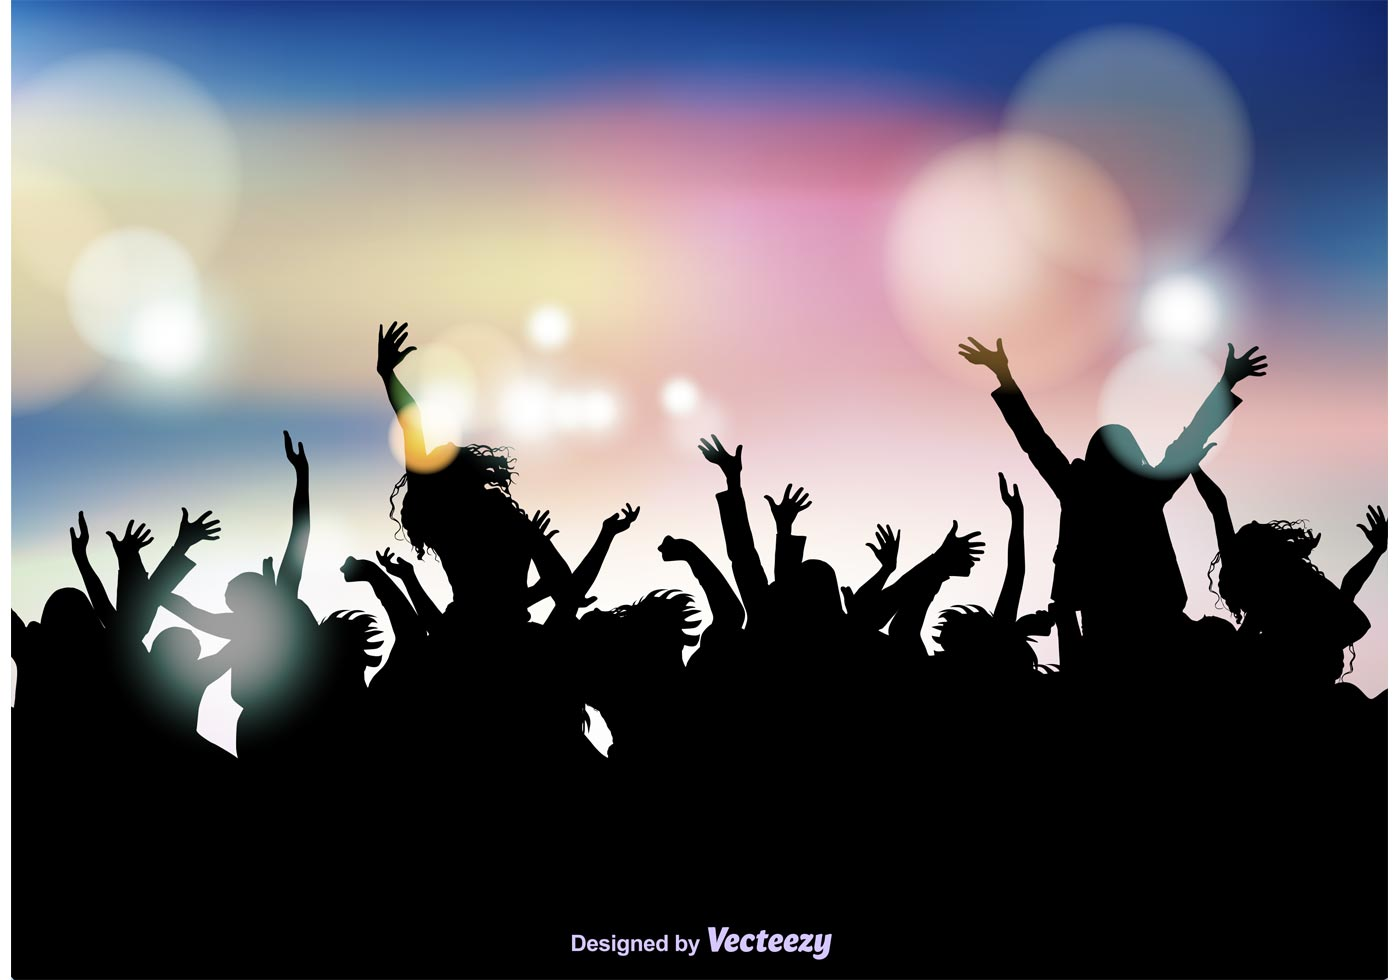 Crowd Silhouette Free Vector Art - (4,160 Free Downloads)